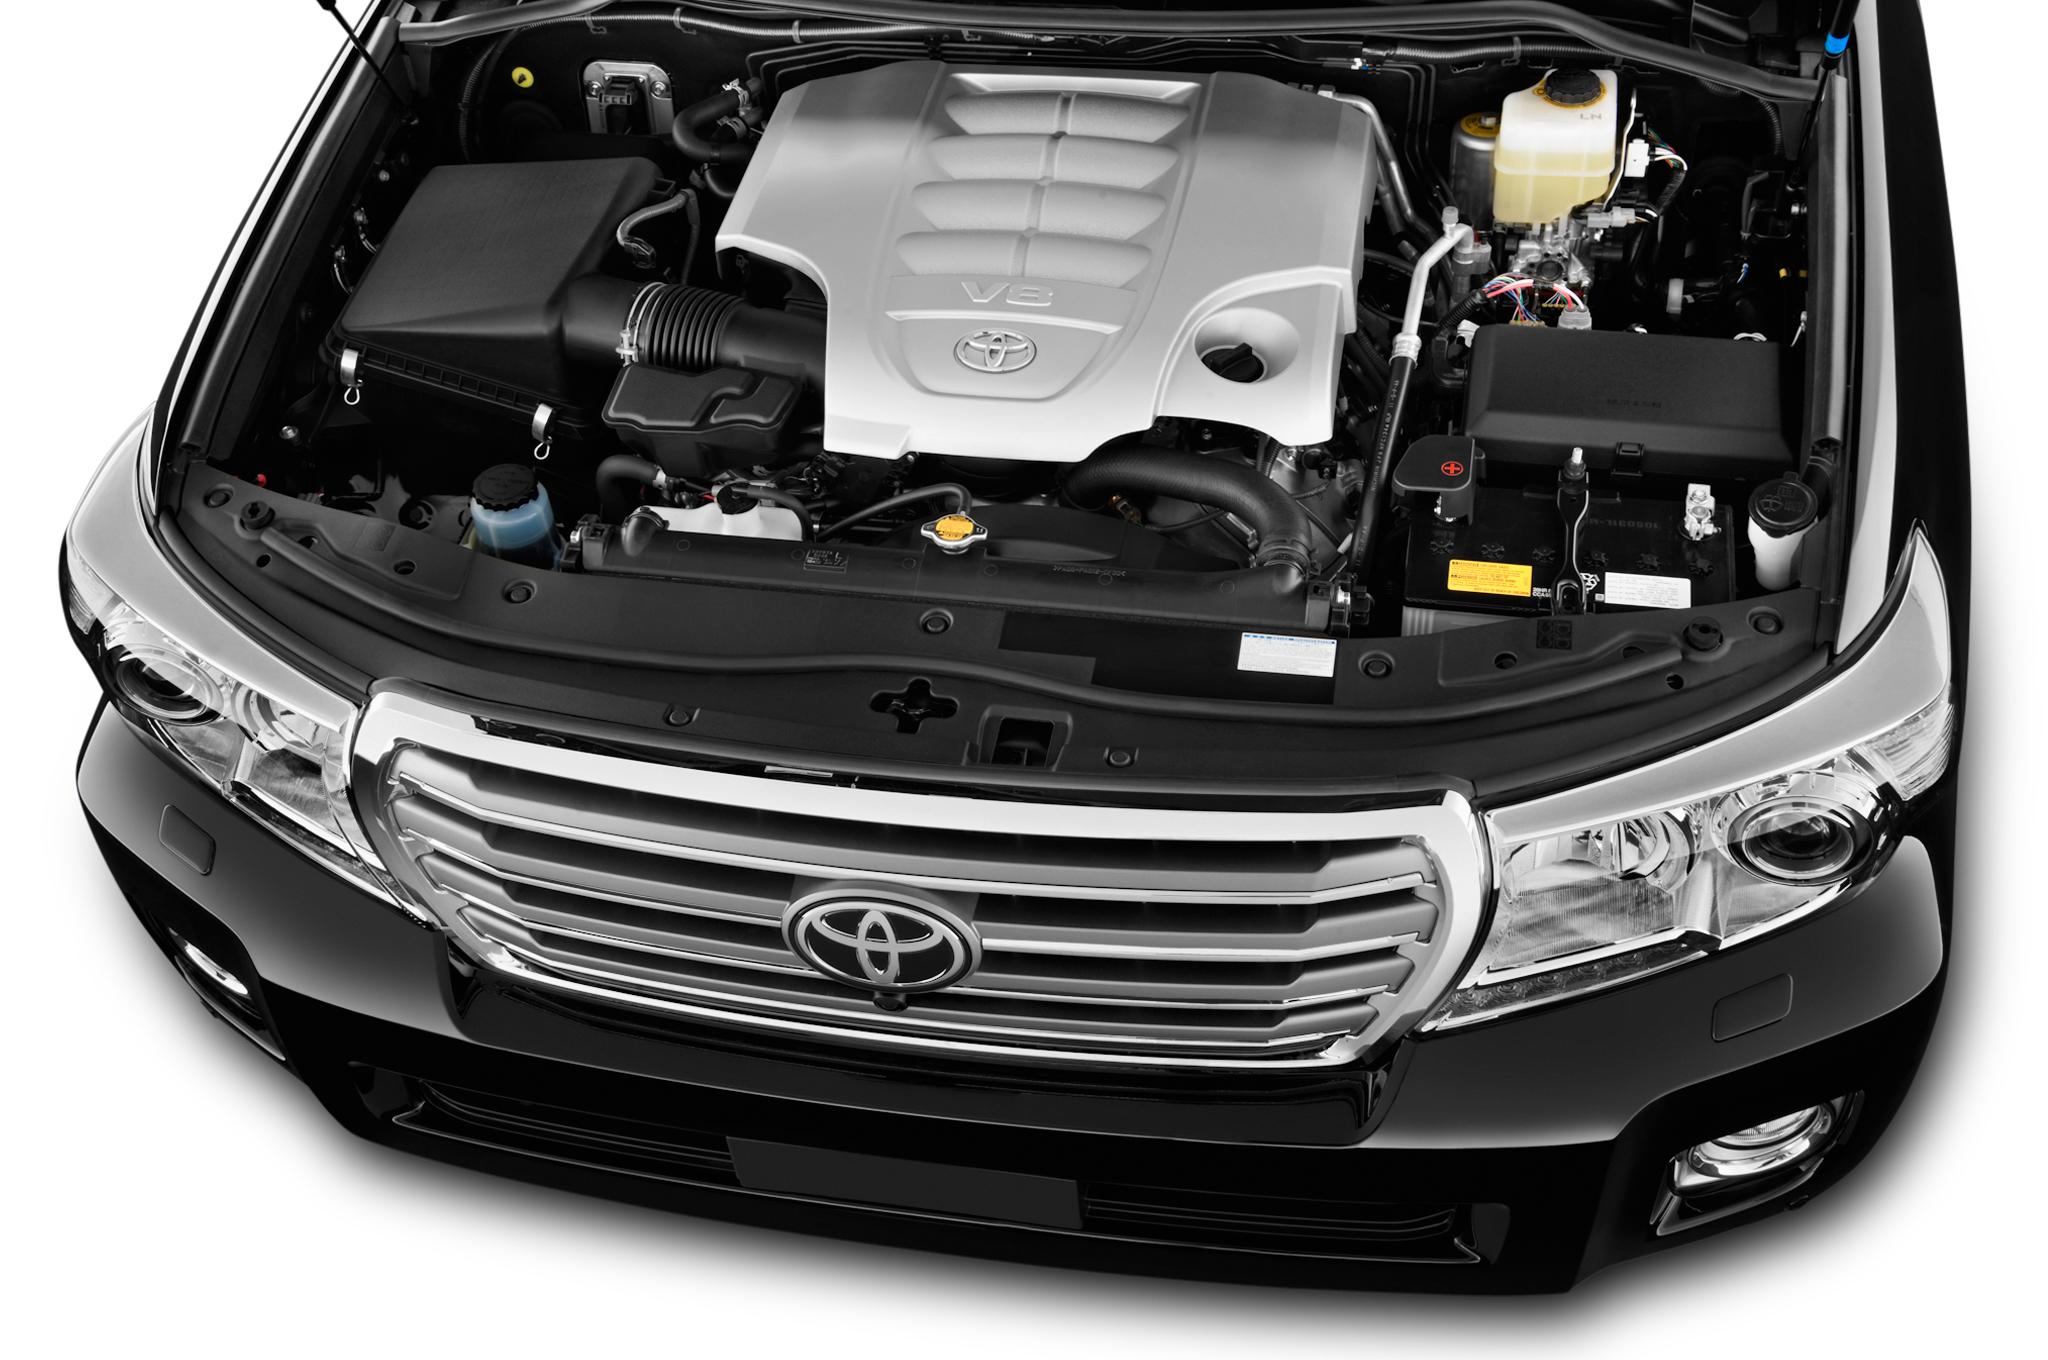 Refreshed Toyota Land Cruiser Debuts In Japan 300 2015 53 67